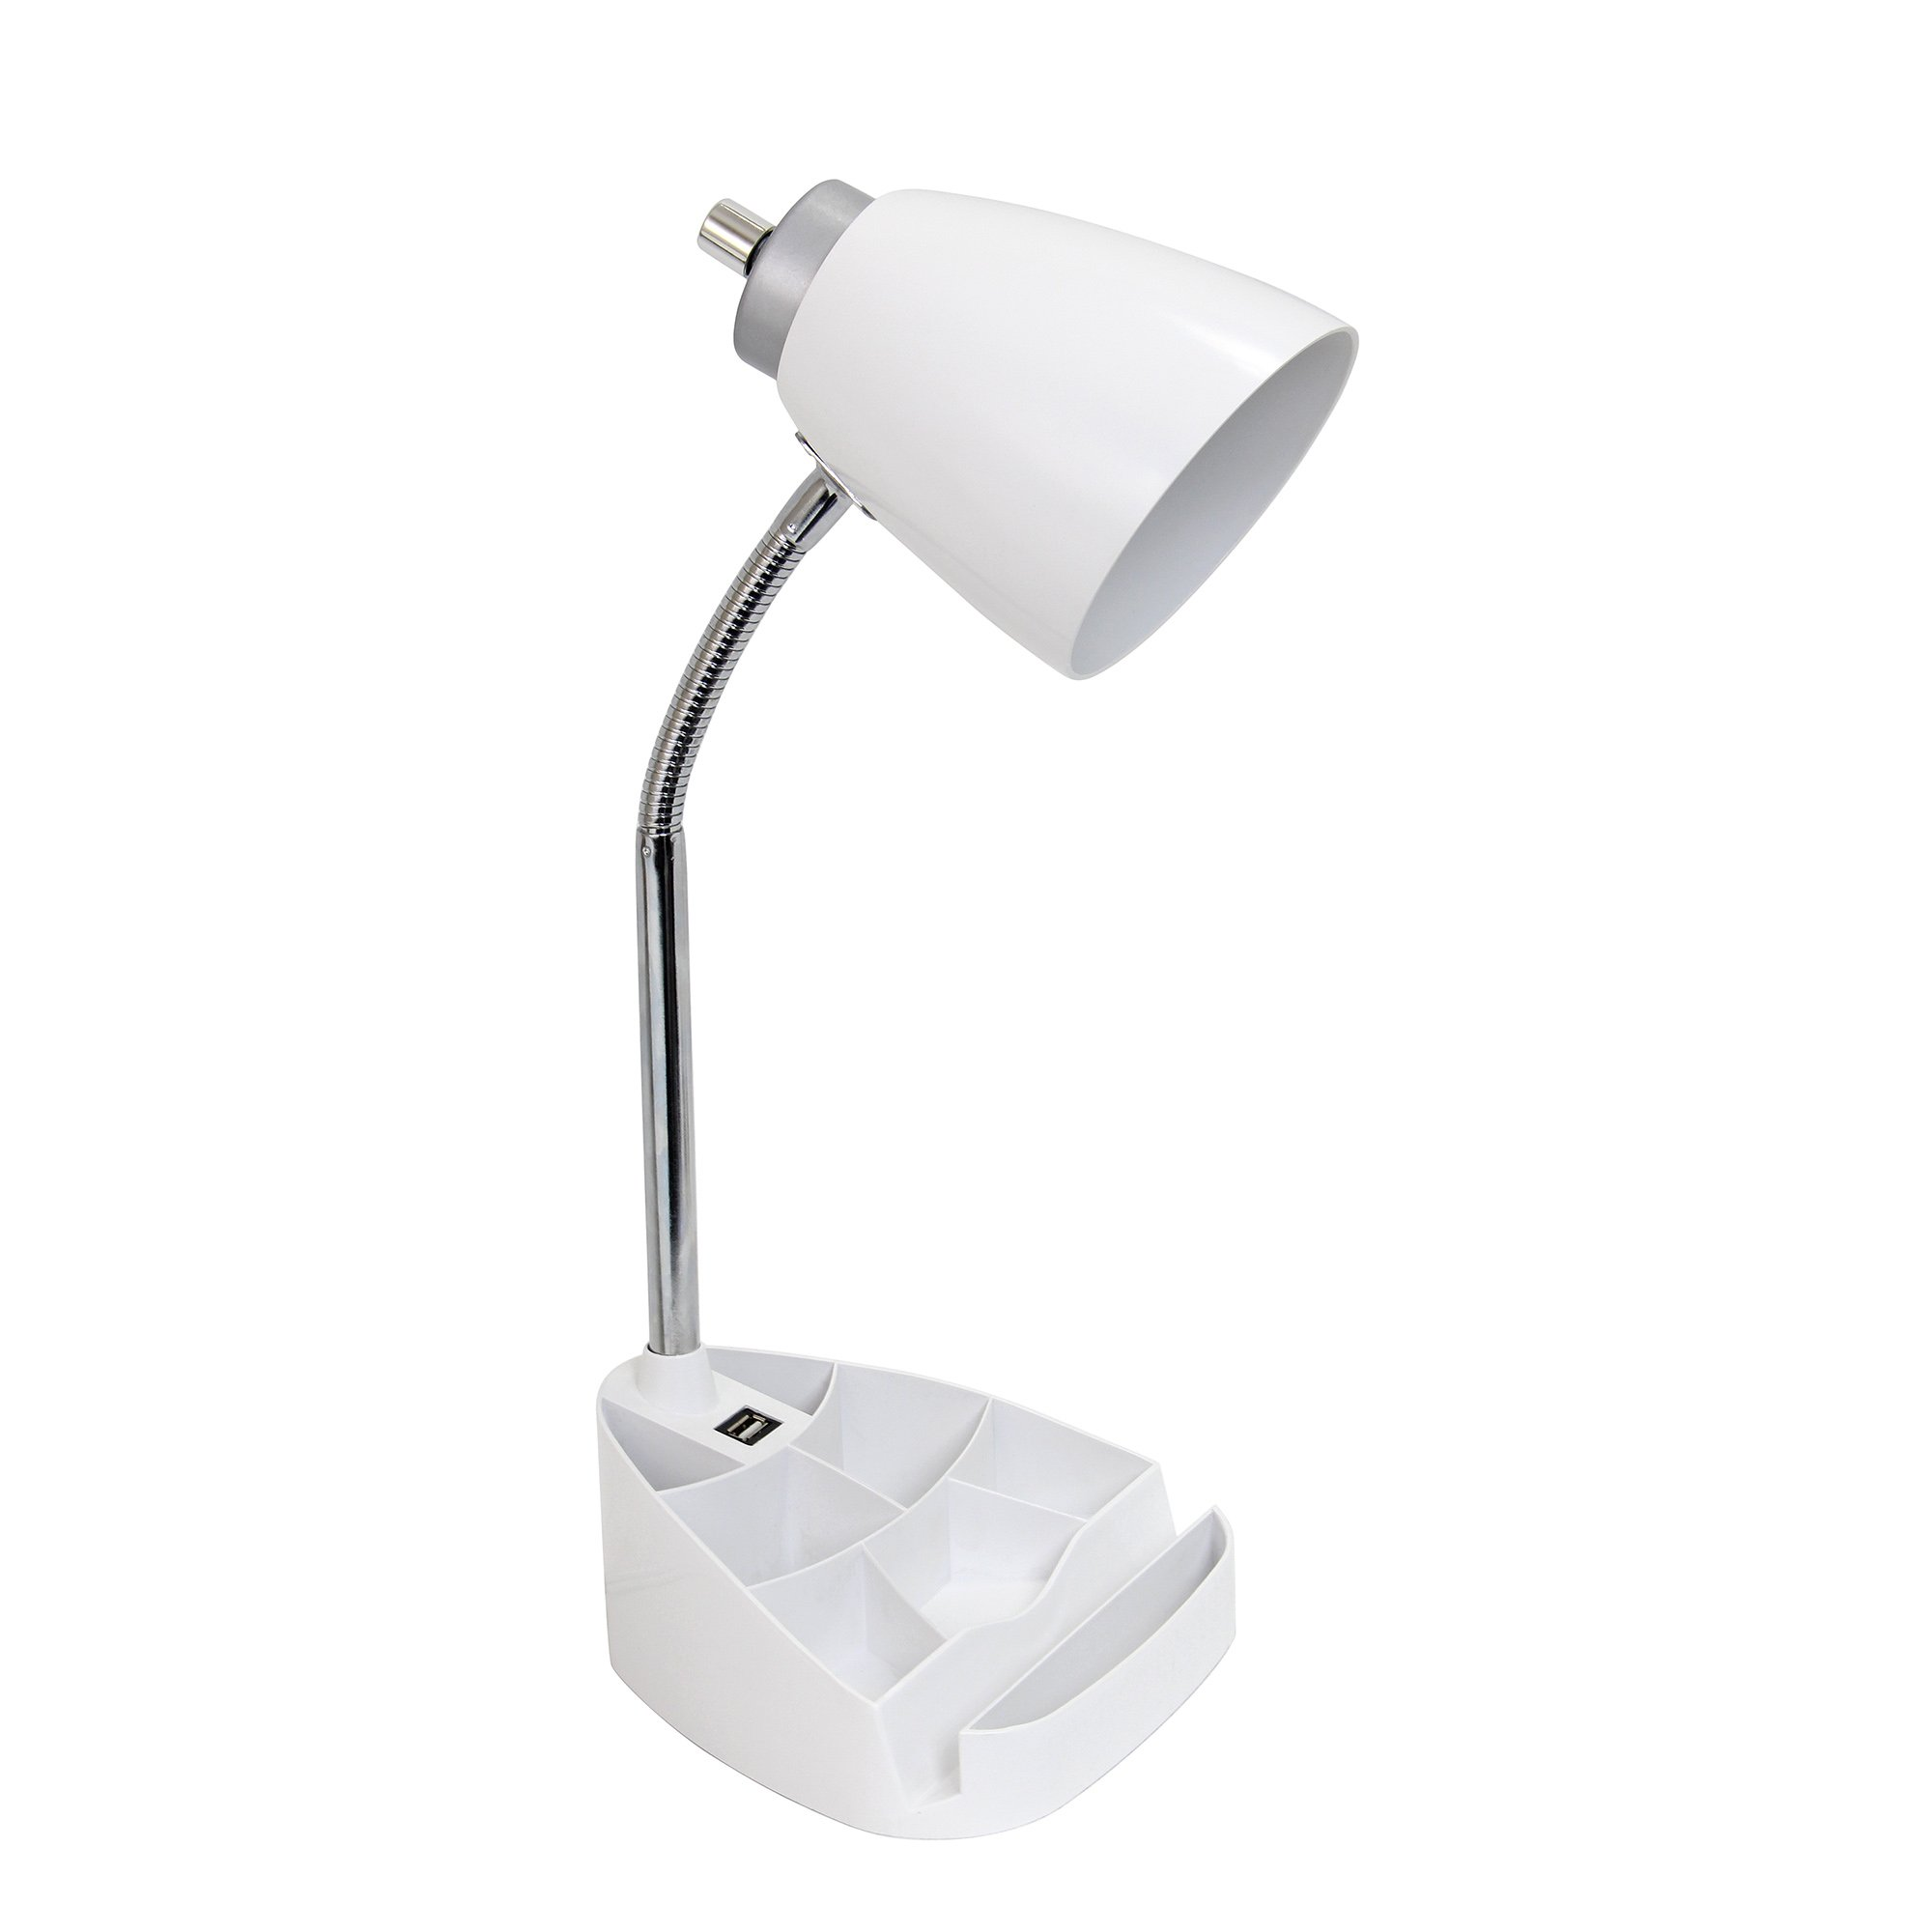 Limelights LD1056-WHT Gooseneck Organizer Desk Lamp with Ipad Tablet Stand Book Holder and USB Port, White